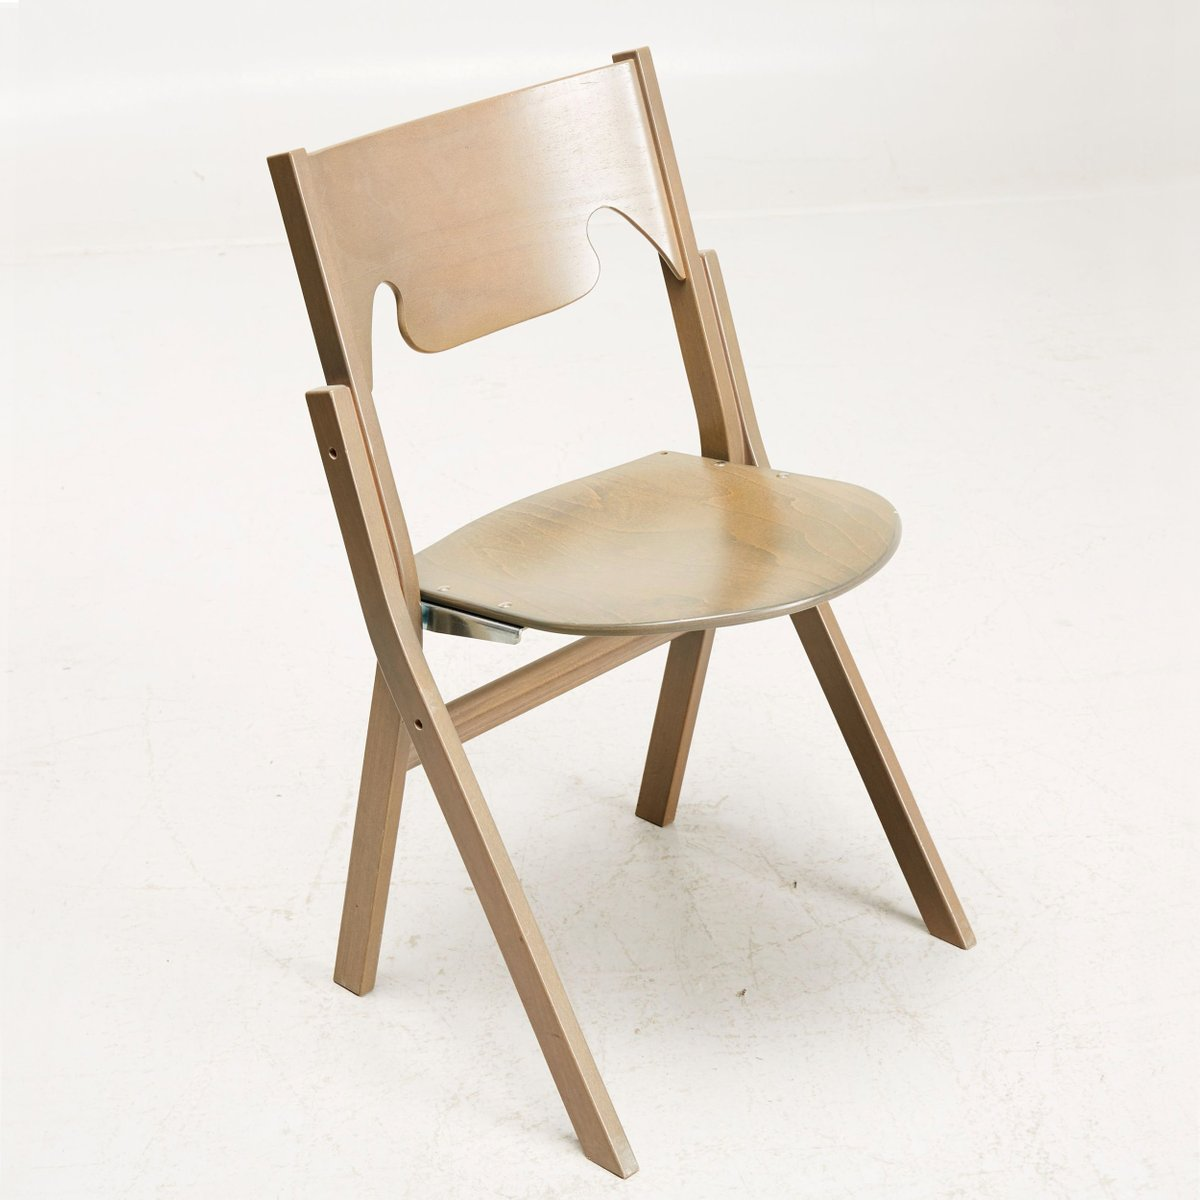 Modern Folding Chairs Scandinavian Modern Folding Chairs By Ake Axelsson Set Of